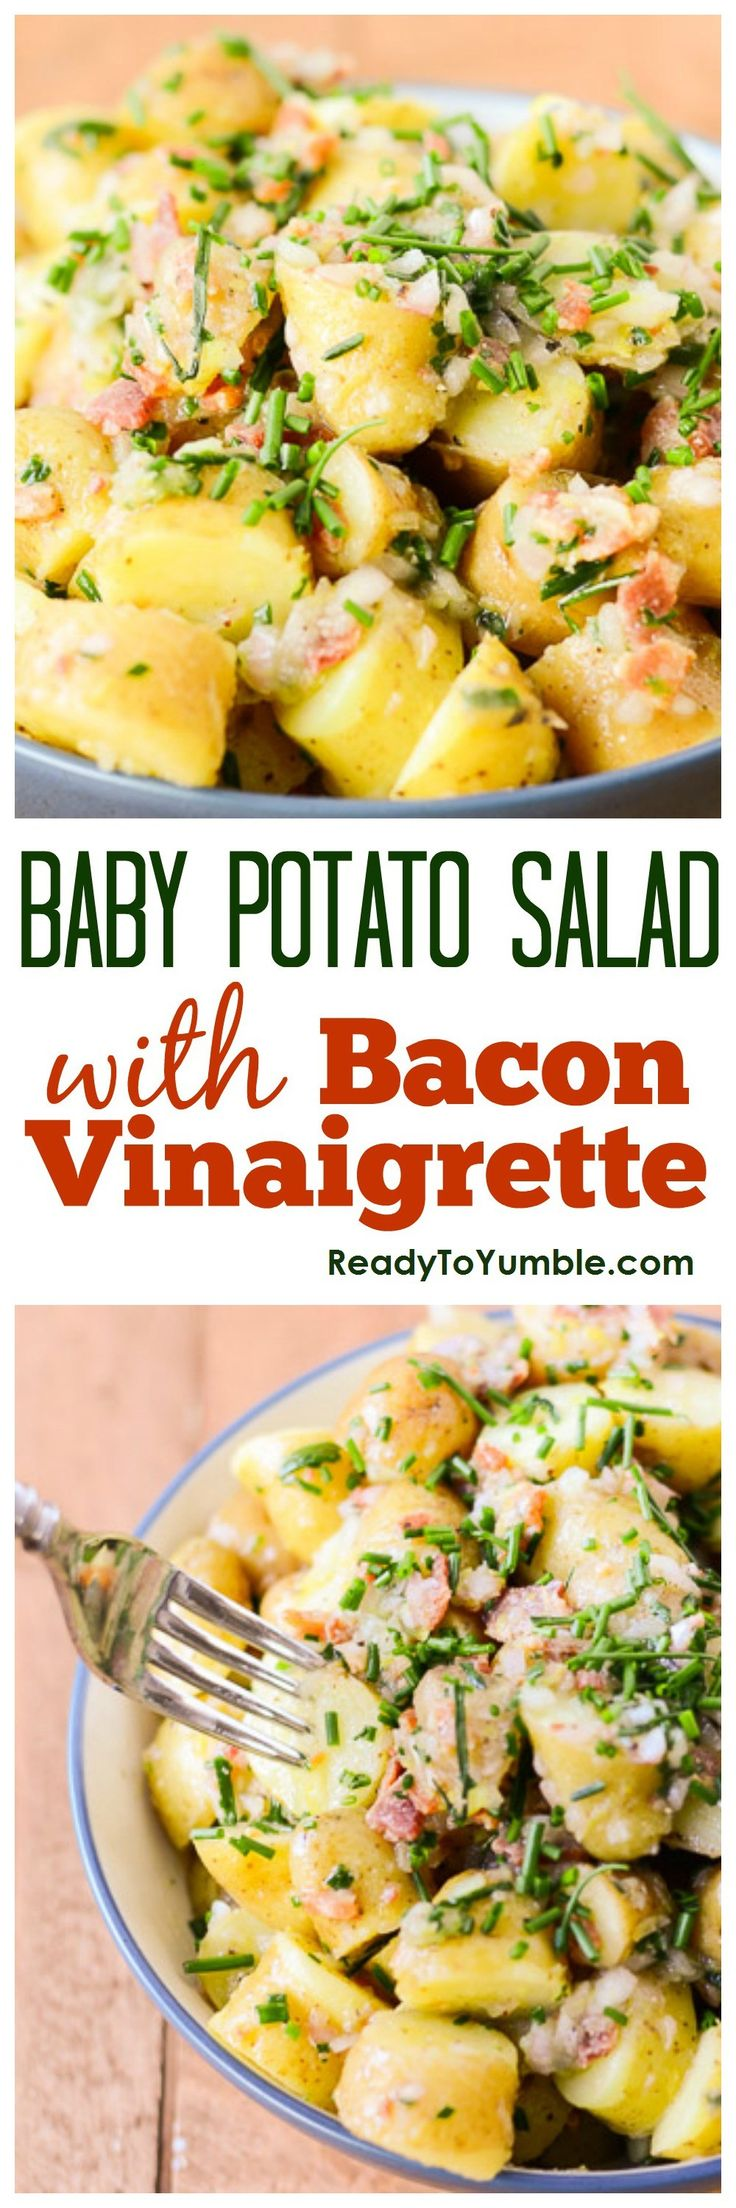 Baby Potato Salad with Bacon Vinaigrette. Sweet baby potatoes, savory bacon, and a hit of fresh lemon make a perfect side dish for almost any occasion.